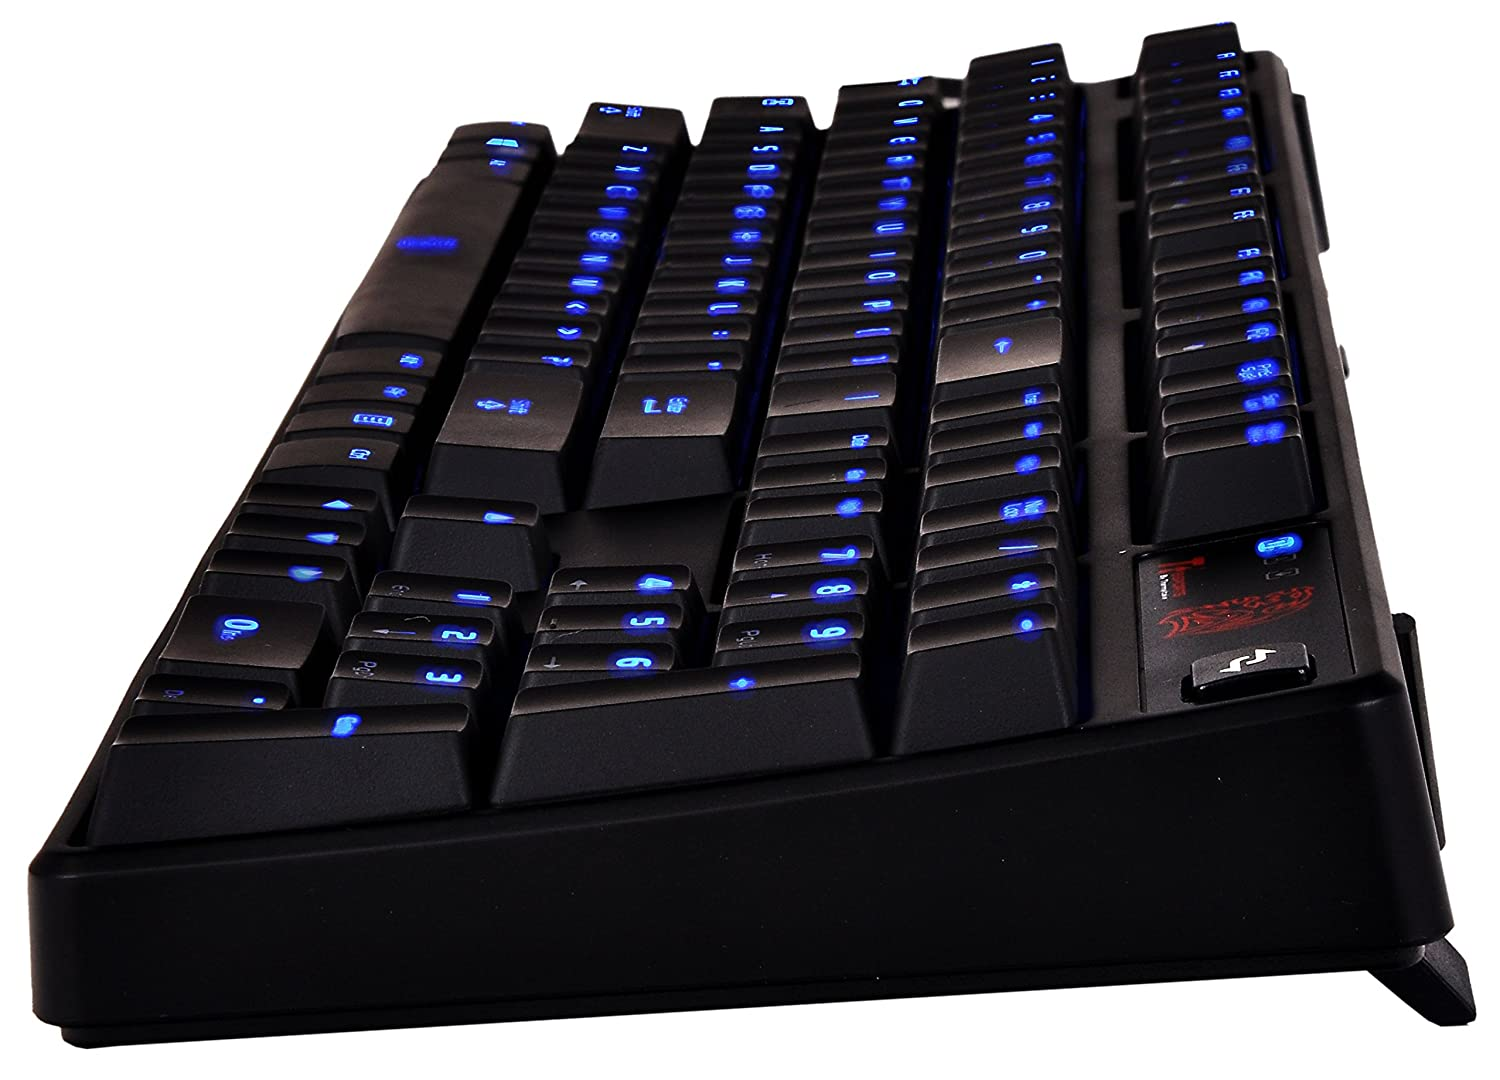 Top 5 PS4 Keyboards in 2017